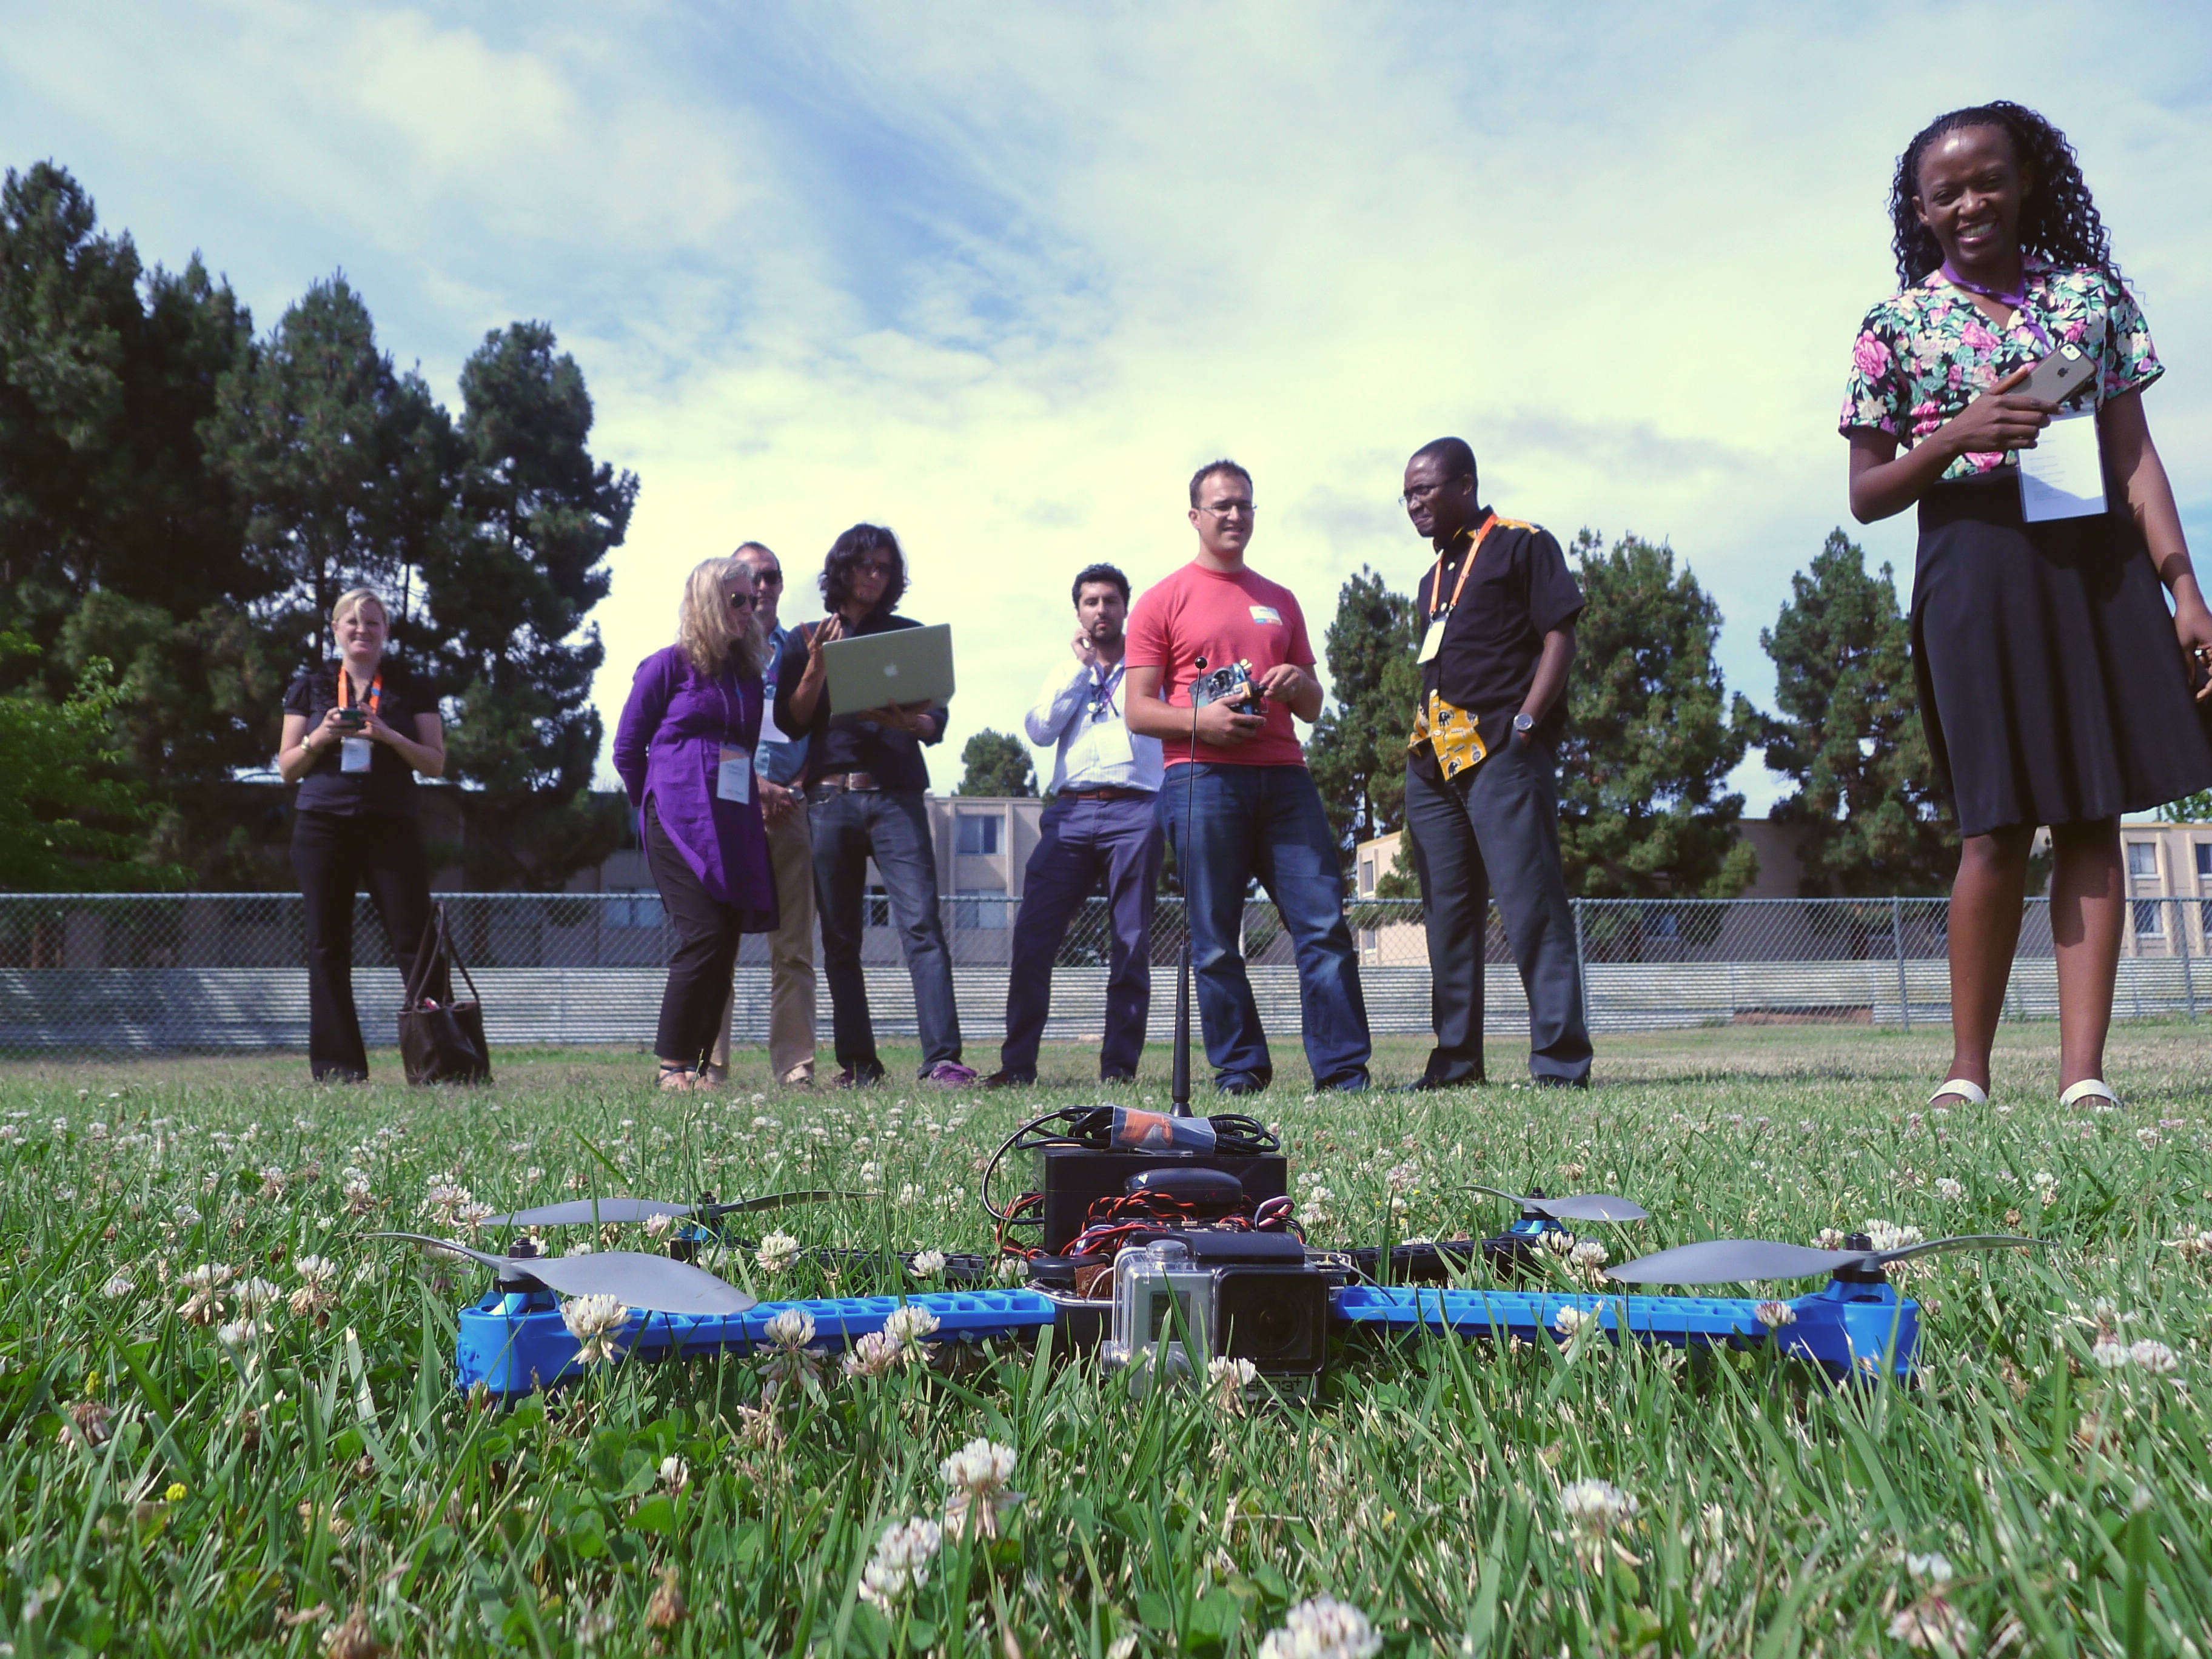 UNICEF staff get a demo of unmanned aerial vehicles on the ball field at Singularity University.